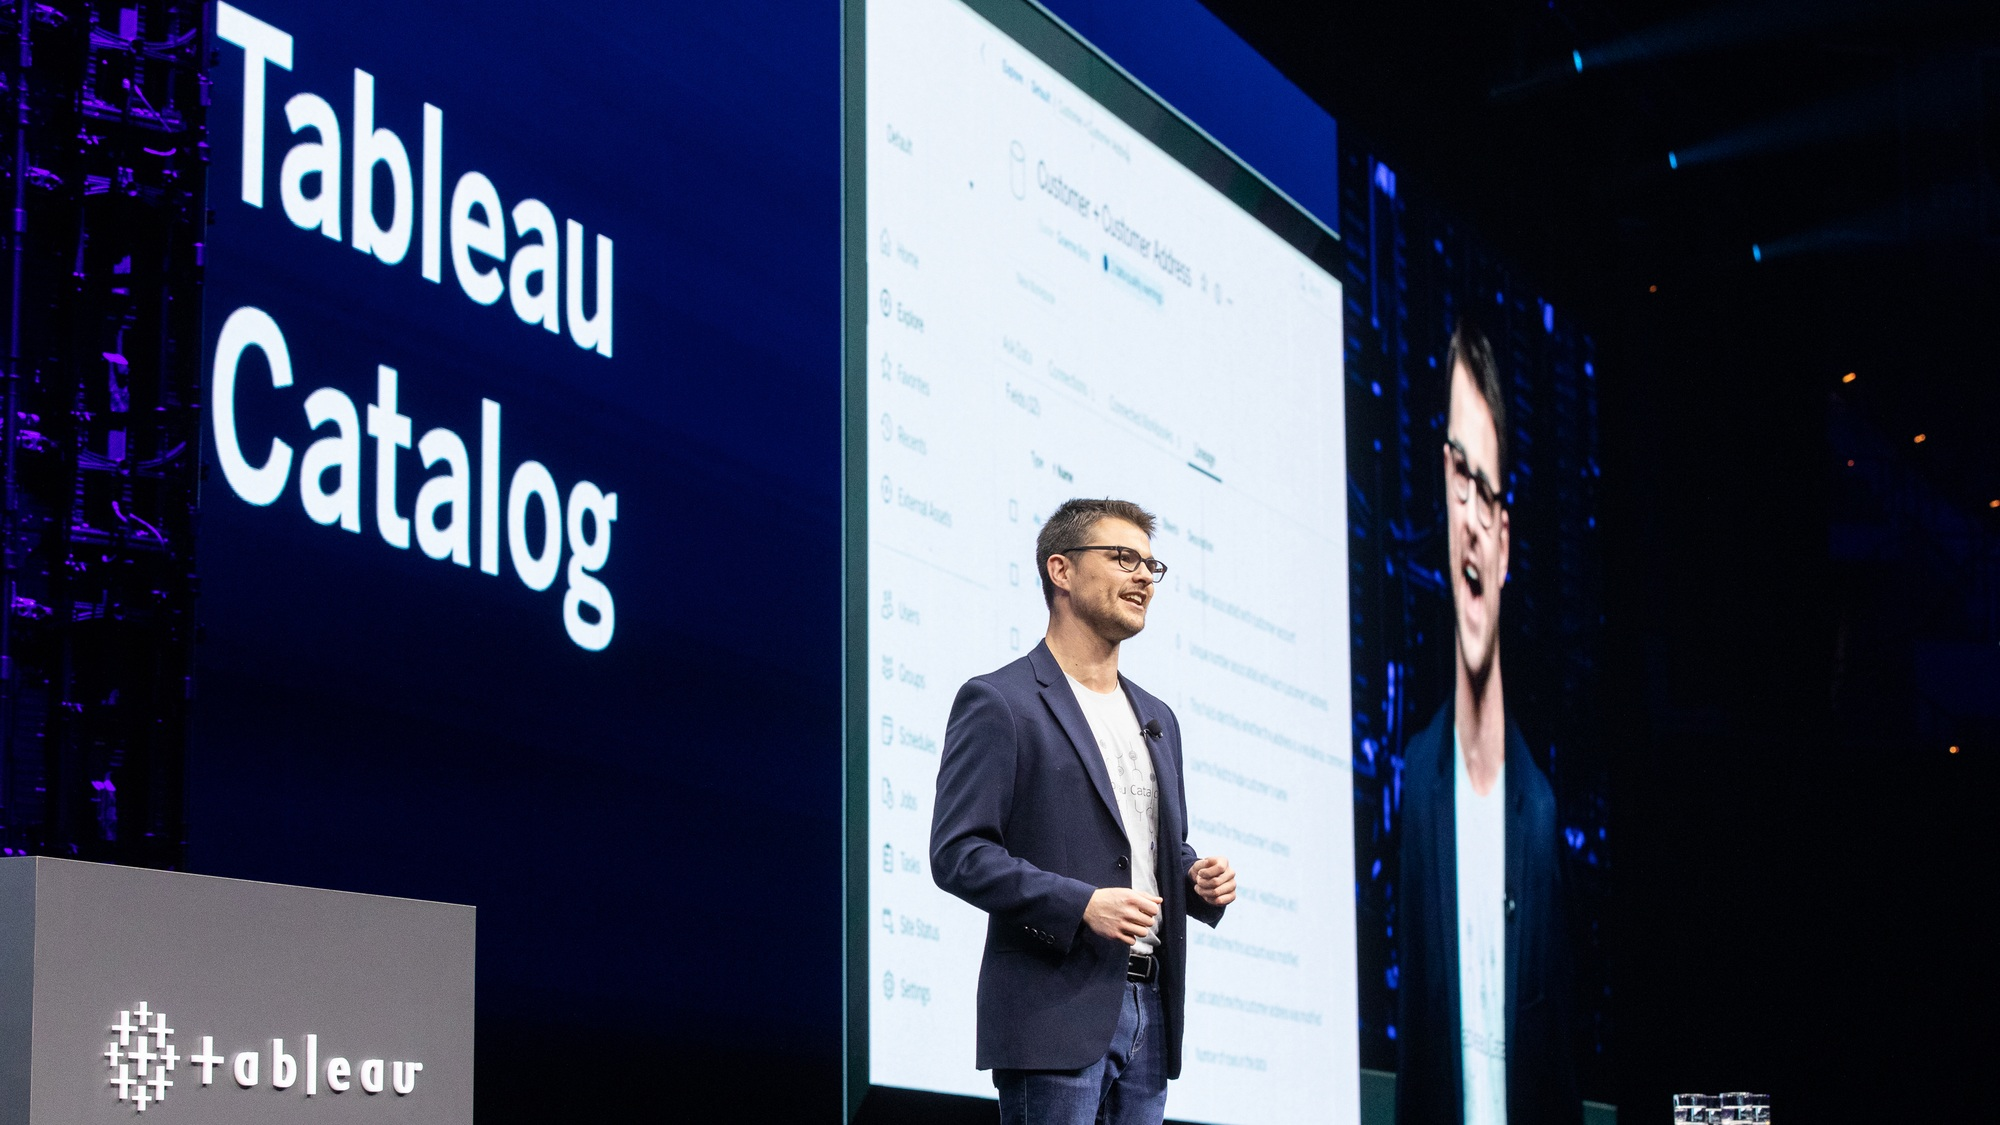 Product manager Graeme demos Tableau Catalog on stage at TC19